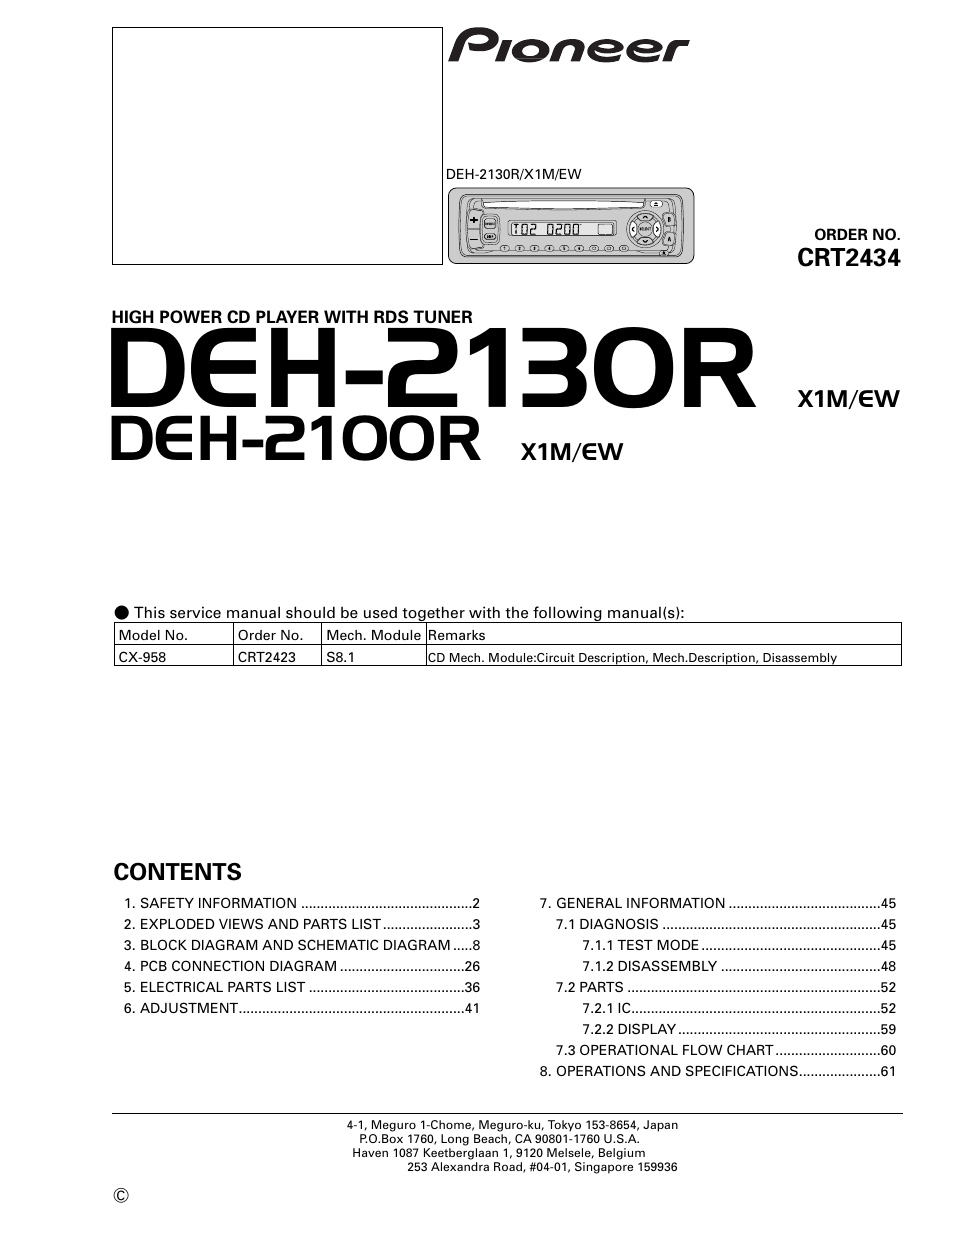 pioneer deh 2130r en page1 pioneer deh 2130r en user manual 66 pages also for deh 2100r en pioneer deh 16 wiring diagram at edmiracle.co